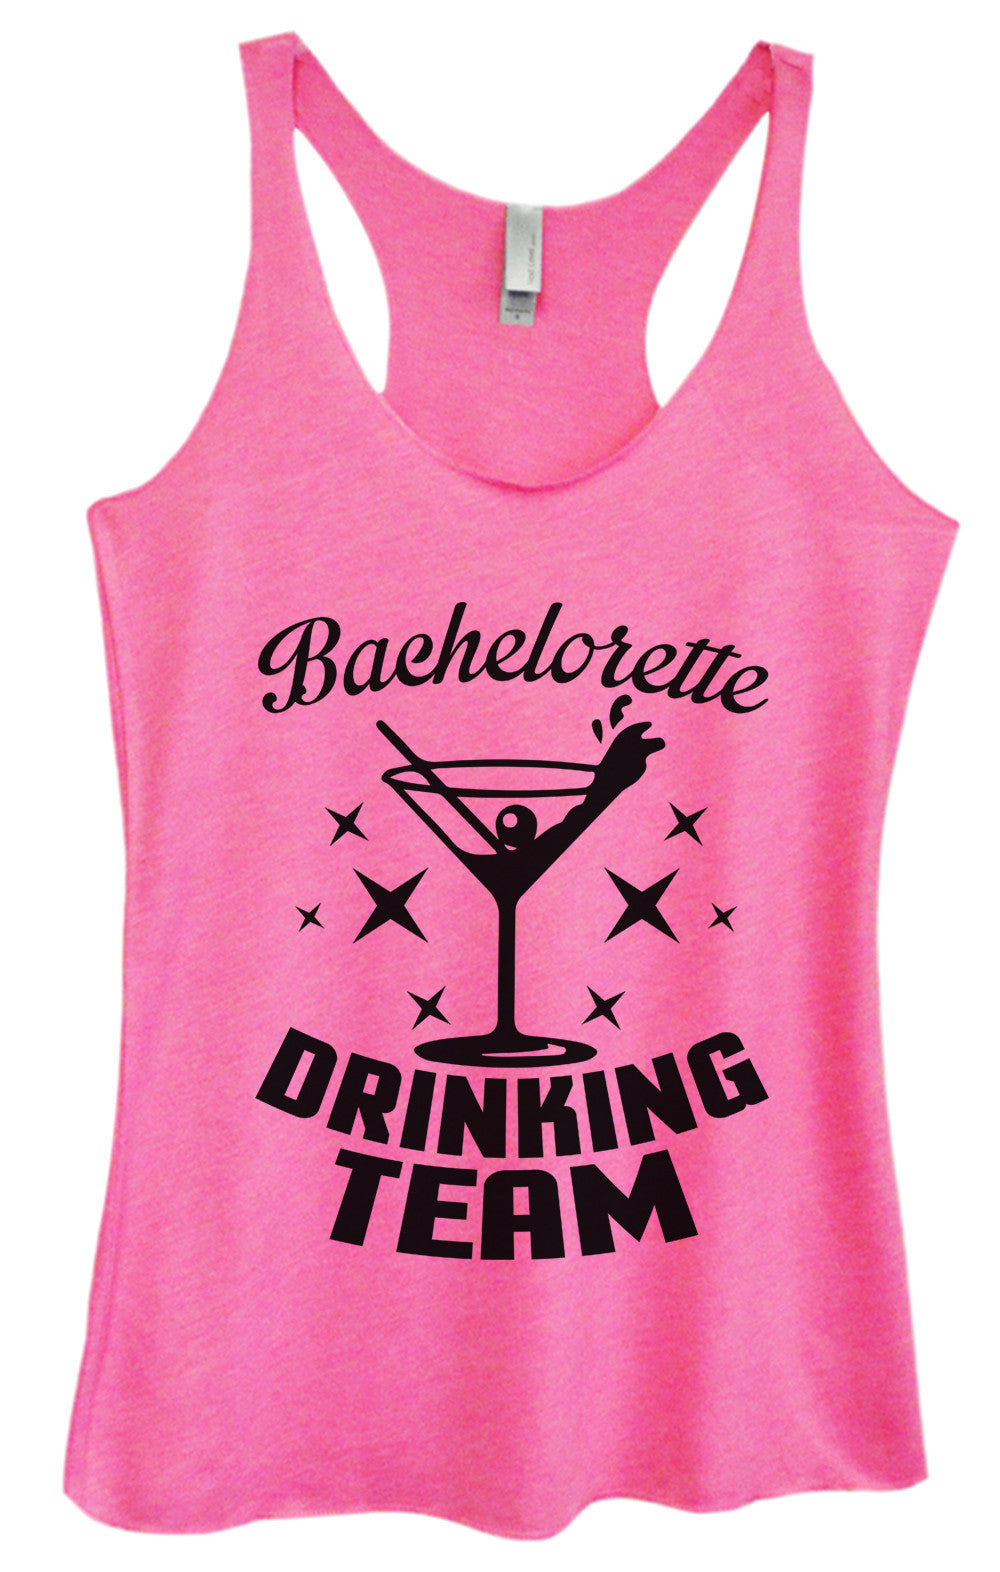 Womens Fashion Triblend Tank Top - Bachelorette Drinking Team - Tri-973 - Funny Shirts Tank Tops Burnouts and Triblends  - 1